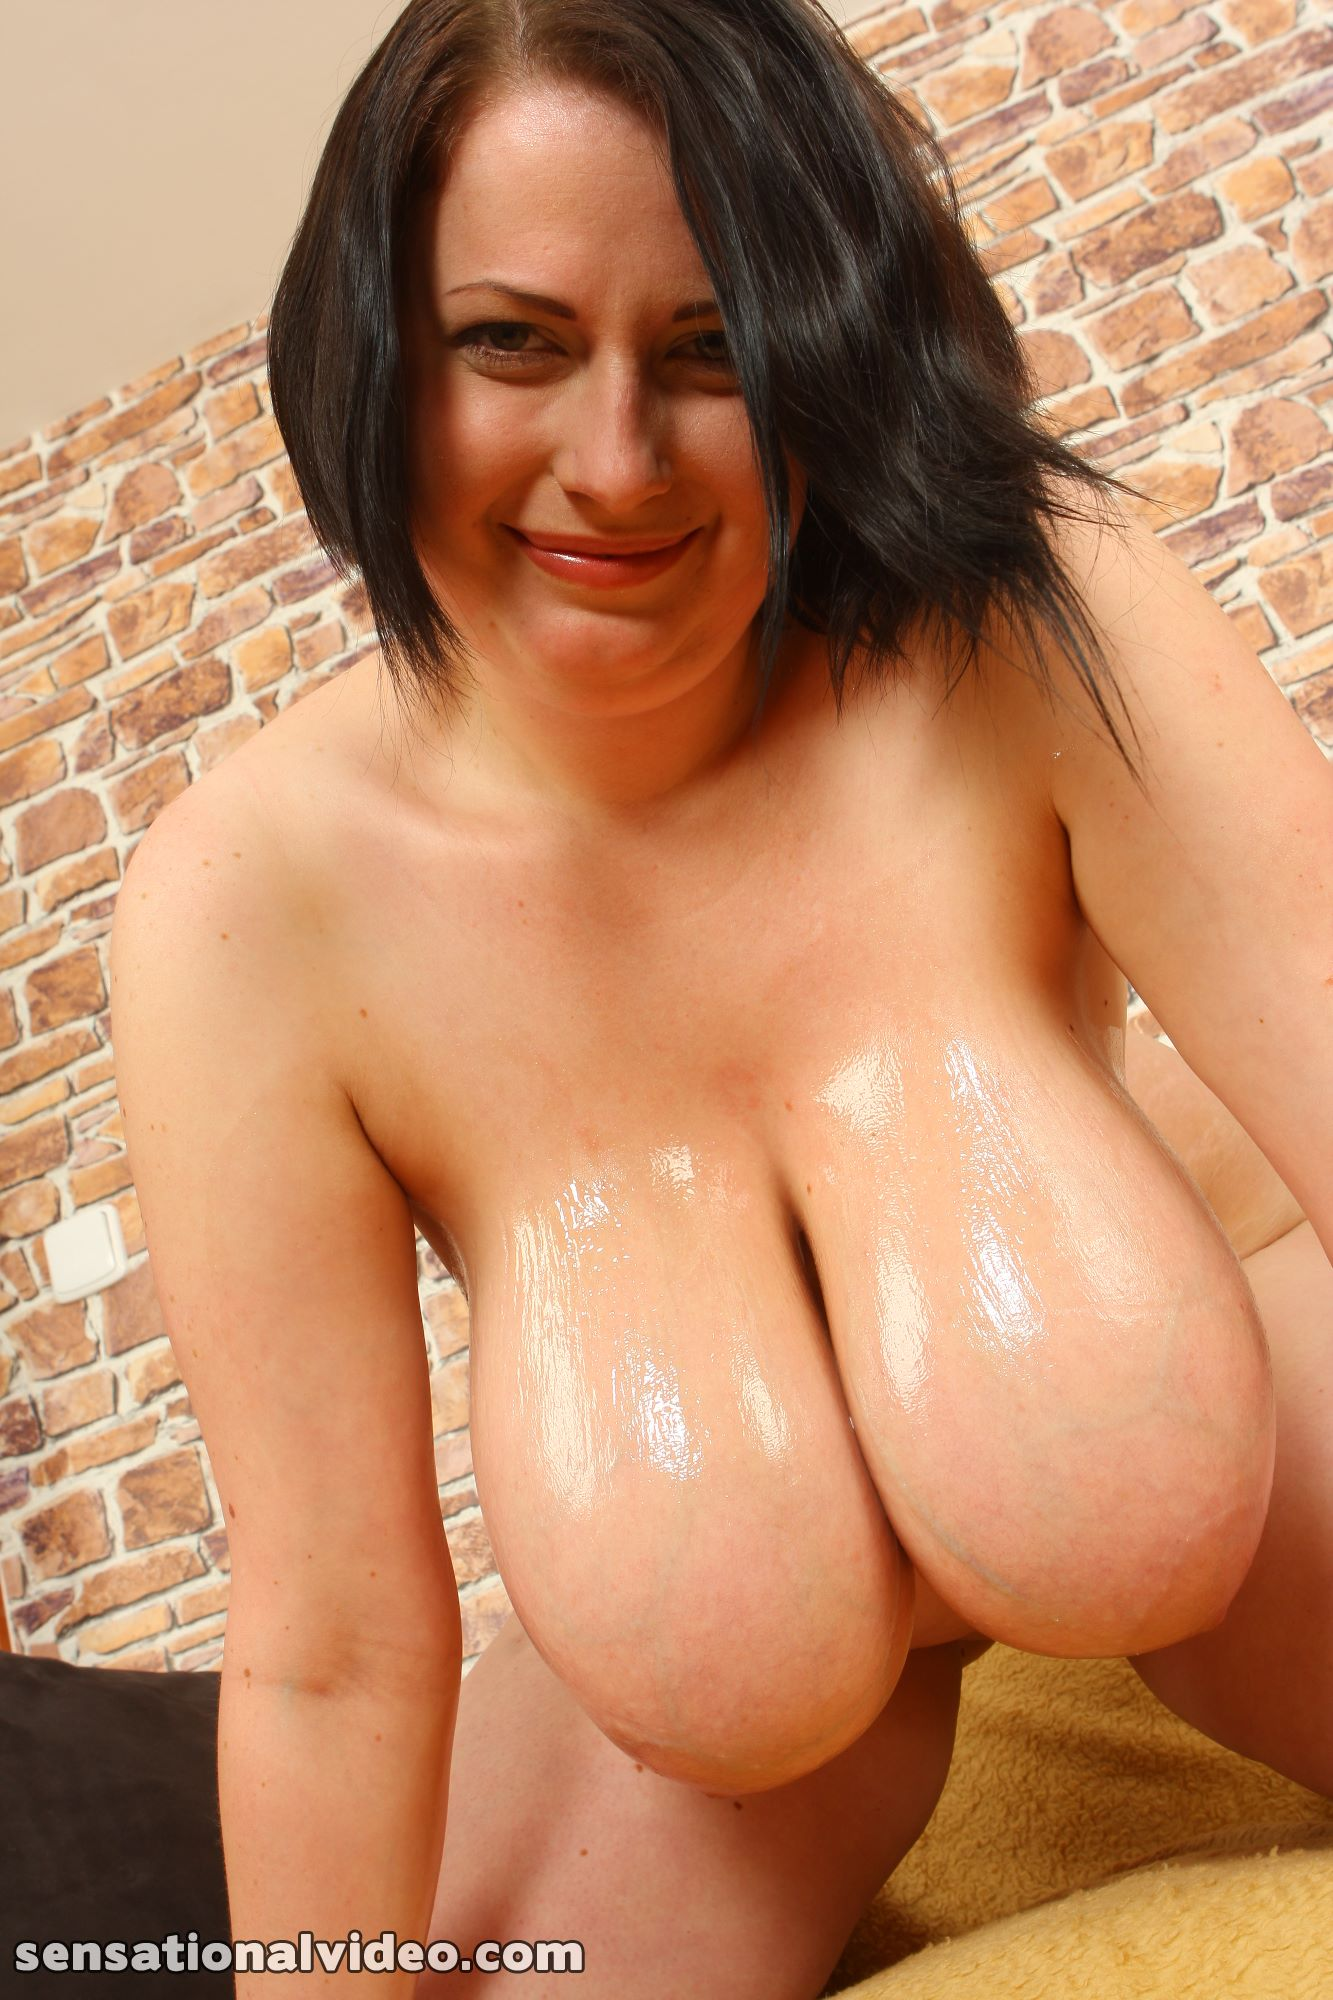 lesgalls spicytitties plumperpass gal535 pic 26